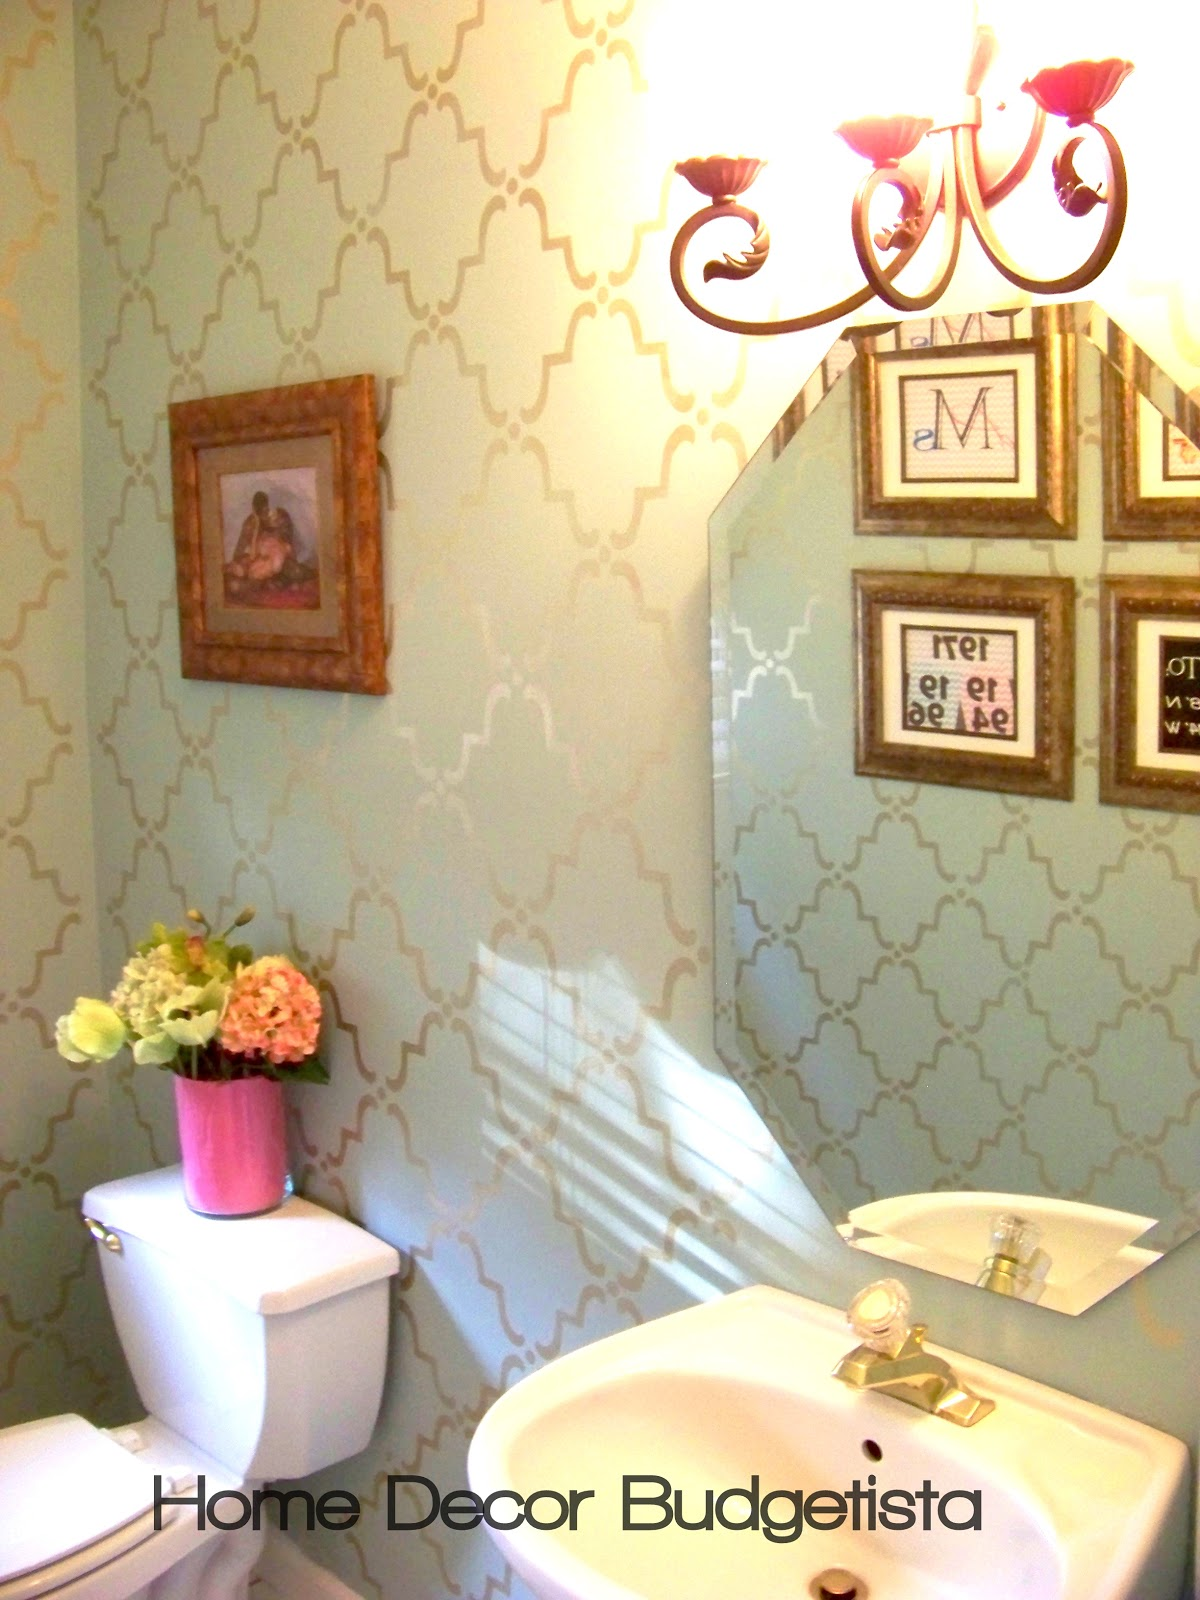 Home Decor Budgetista: Powder Room - Thirty Dollars Update